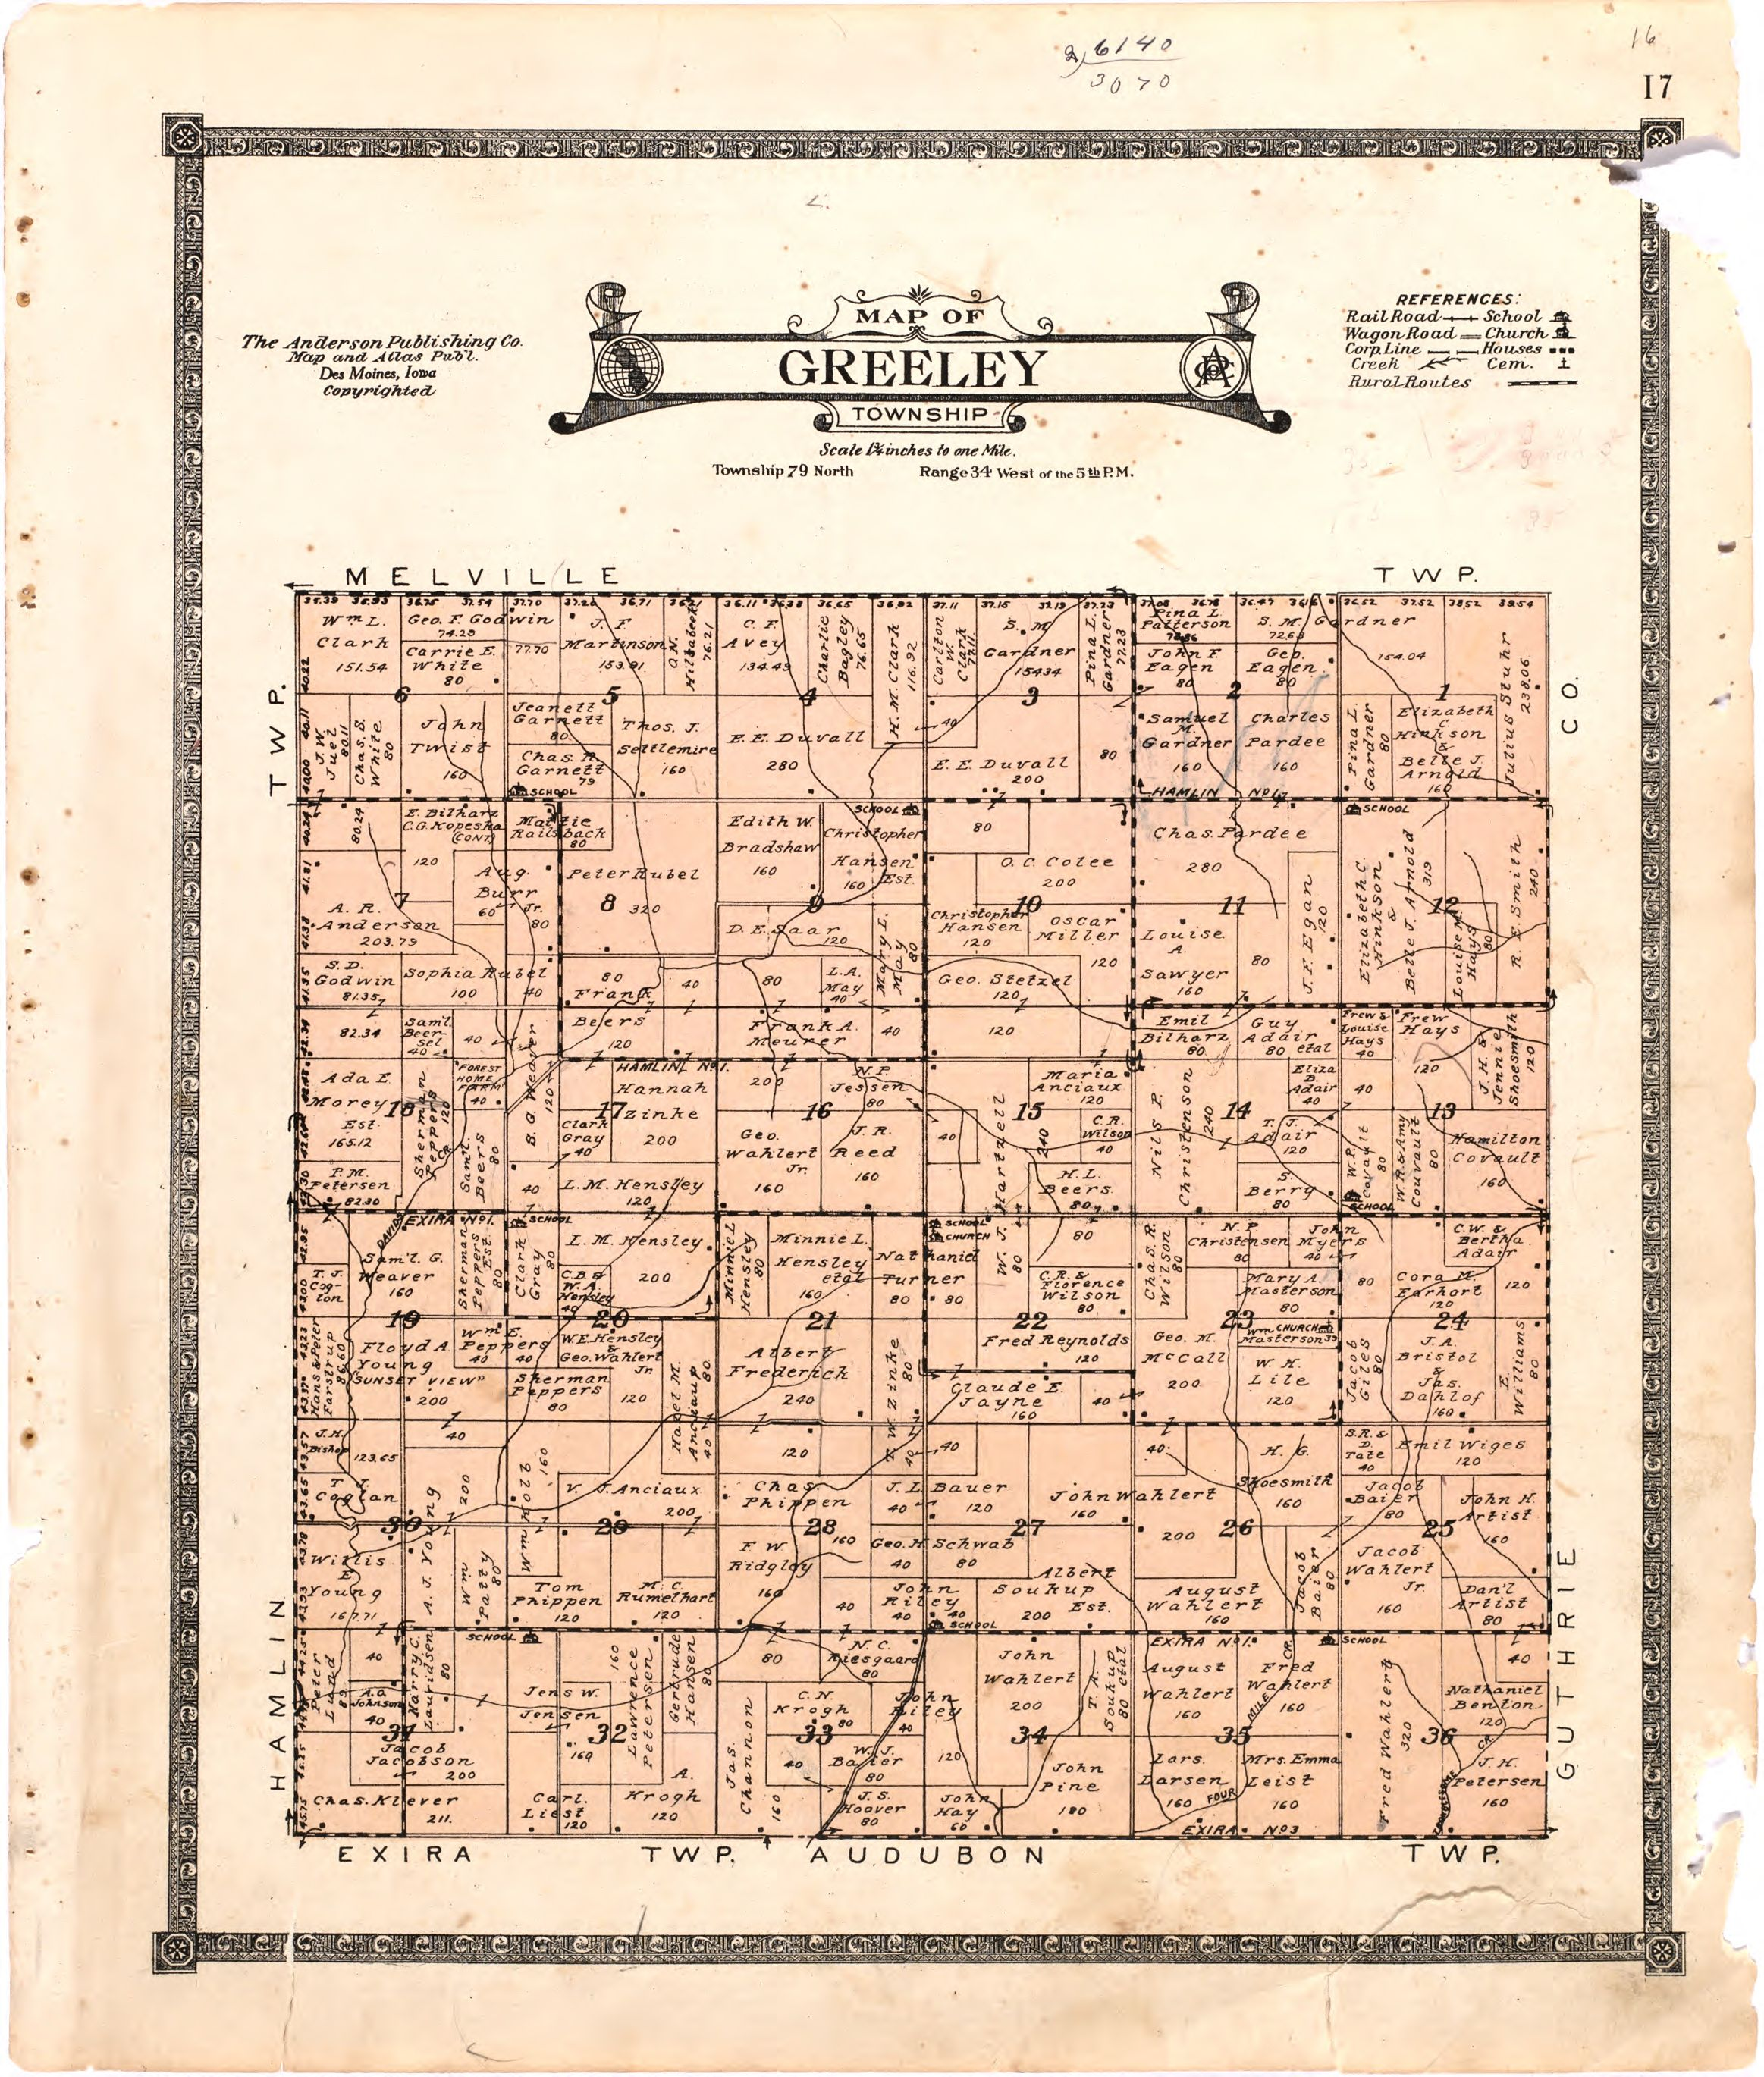 1921 Farm Map of Greeley Township, Audubon County, Iowa